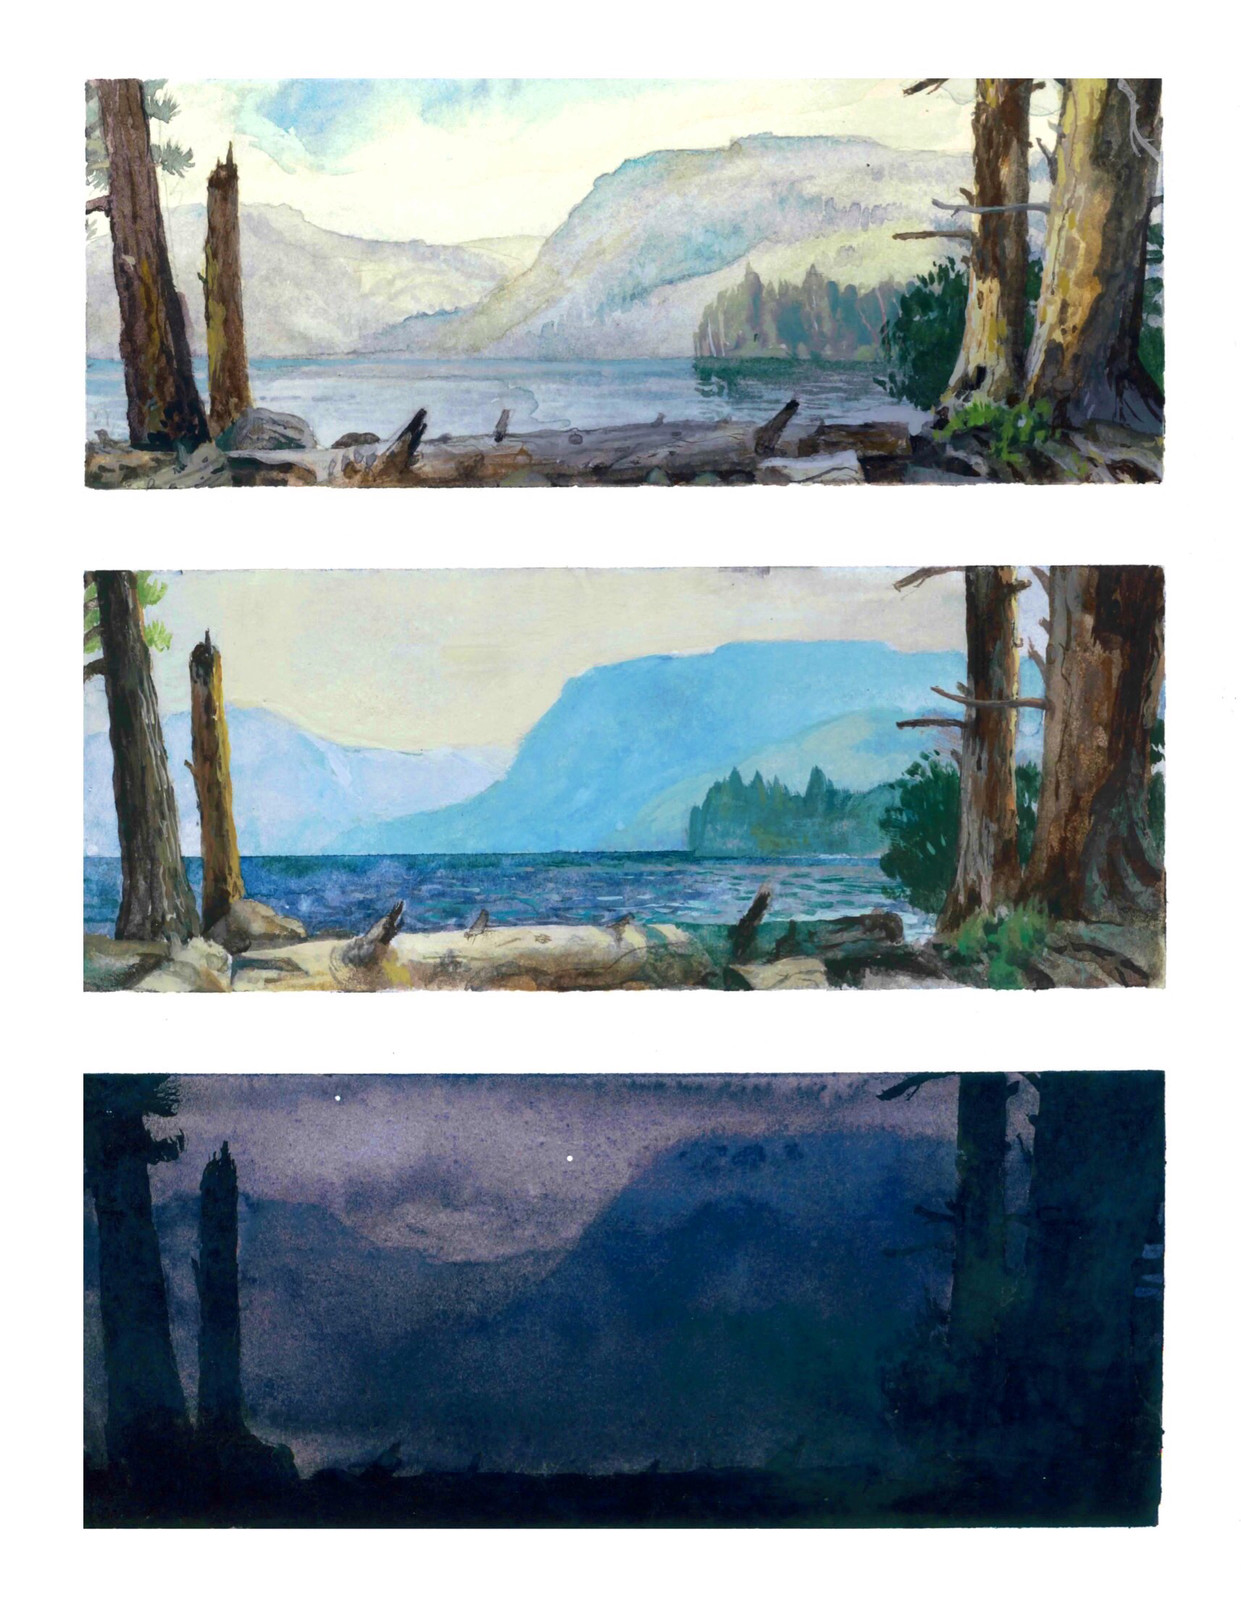 3 watercolor paintings in one day!